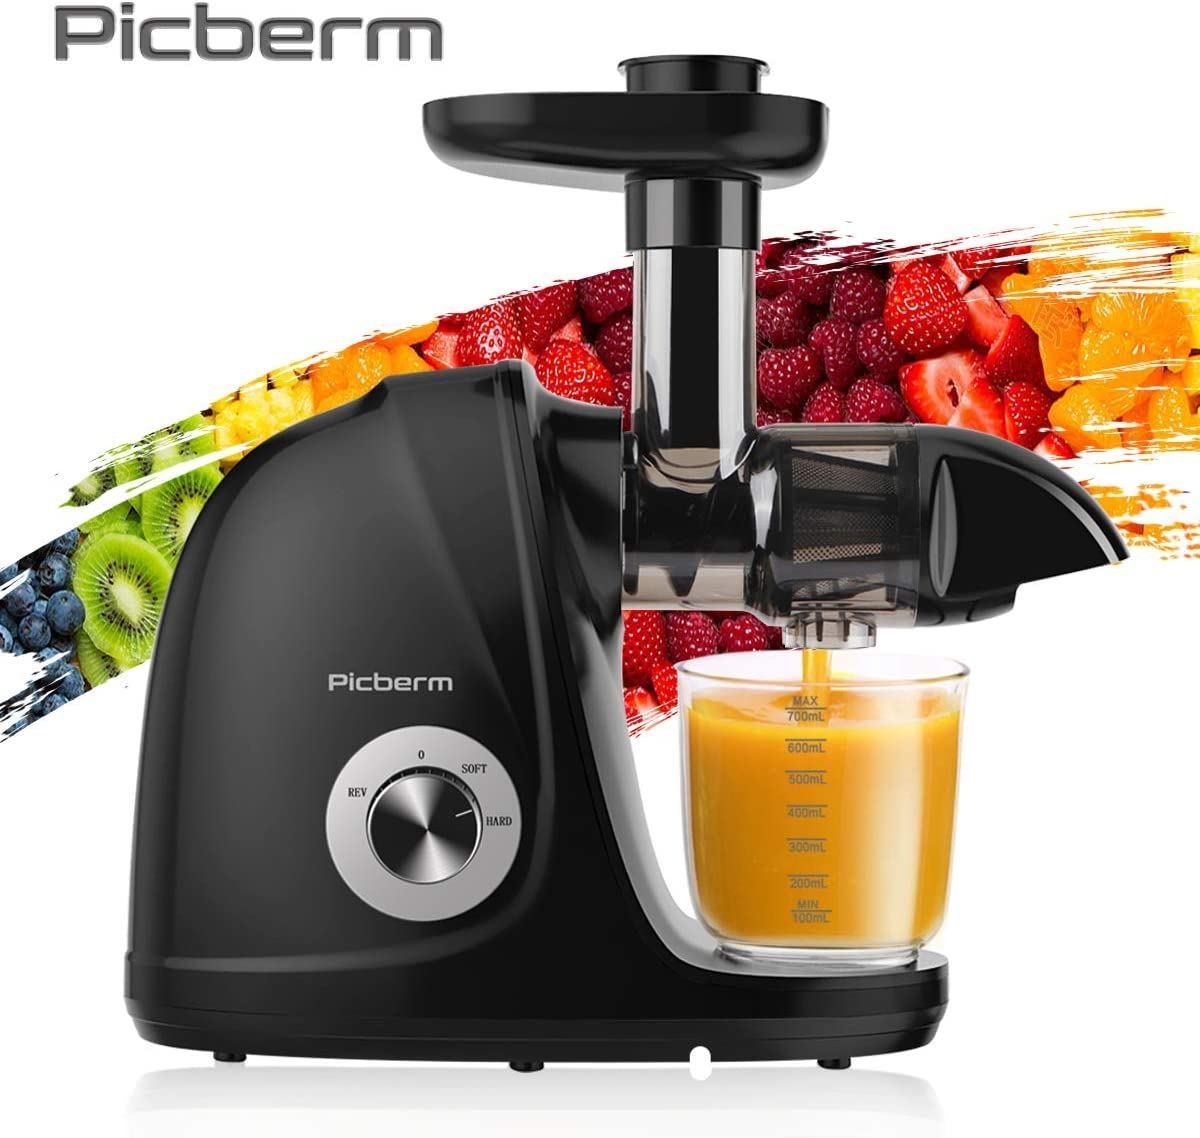 Juicer Machines, Picberm PB2110A Slow Masticating Juicer Extractor with Quiet Motor Easy to Clean, BPA Free Anti clogging Cold Press Juicer with